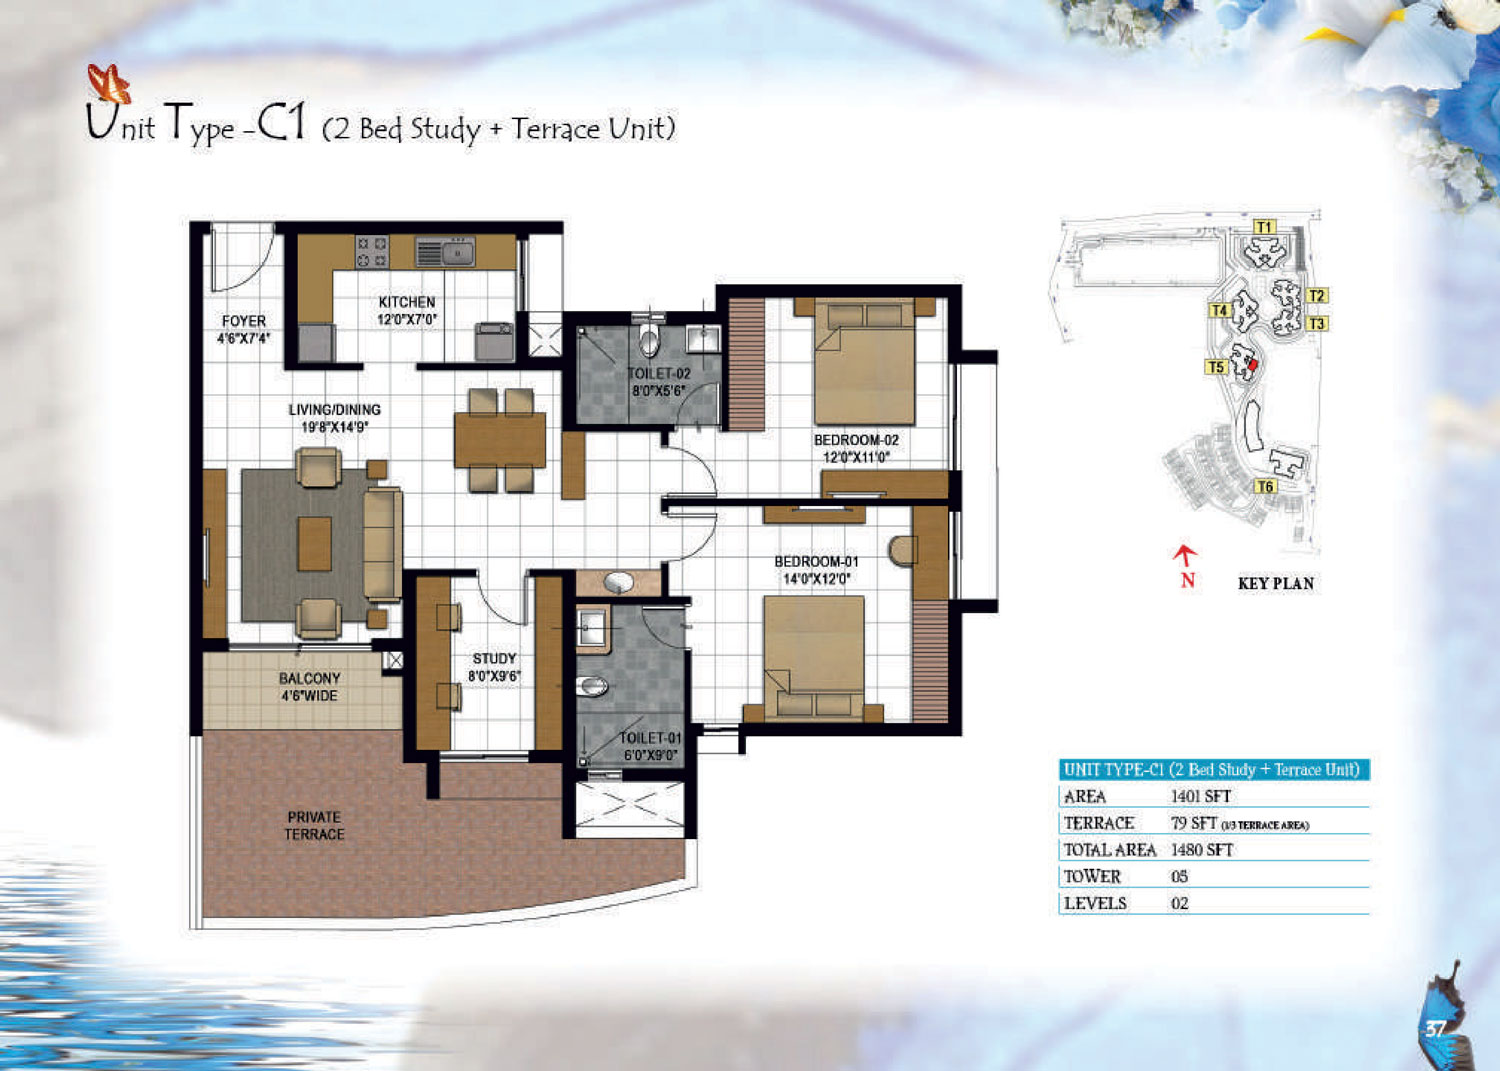 Type C1 - 1480 Sq Ft